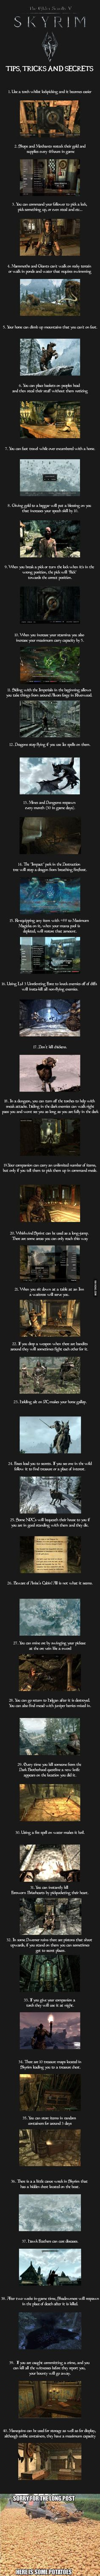 """Are """"Skyrim"""" Tips, Tricks, And Secrets For All Players 40 dicas e truques de skyrim. 40 tricks and secrets about skyrim. U r dicas e truques de skyrim. 40 tricks and secrets about skyrim. U r welcome. Gaming Tips, Gaming Memes, Gaming Facts, Geek Culture, Fallout, Skyrim Tips And Tricks, Yolo, Videogames, Skyrim Funny"""